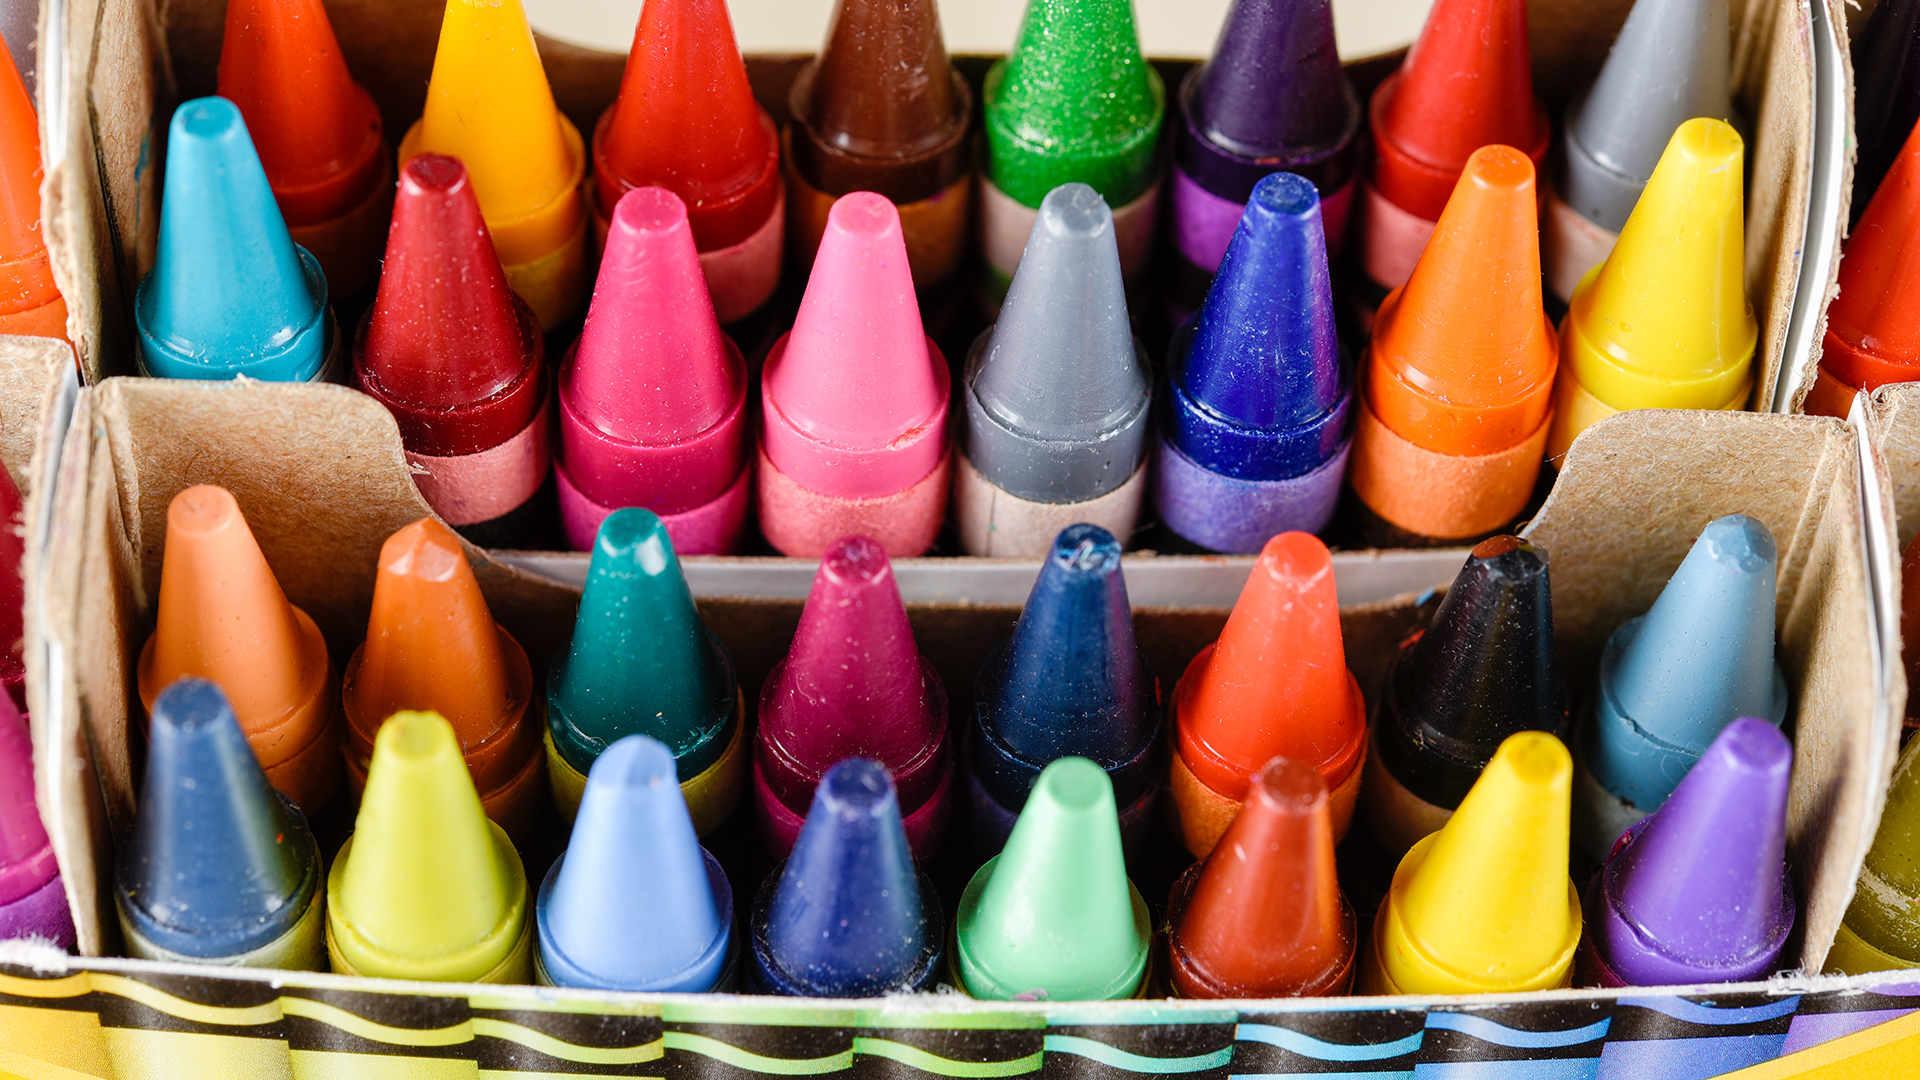 crayola adds new shade of blue to box of crayons and it needs a name